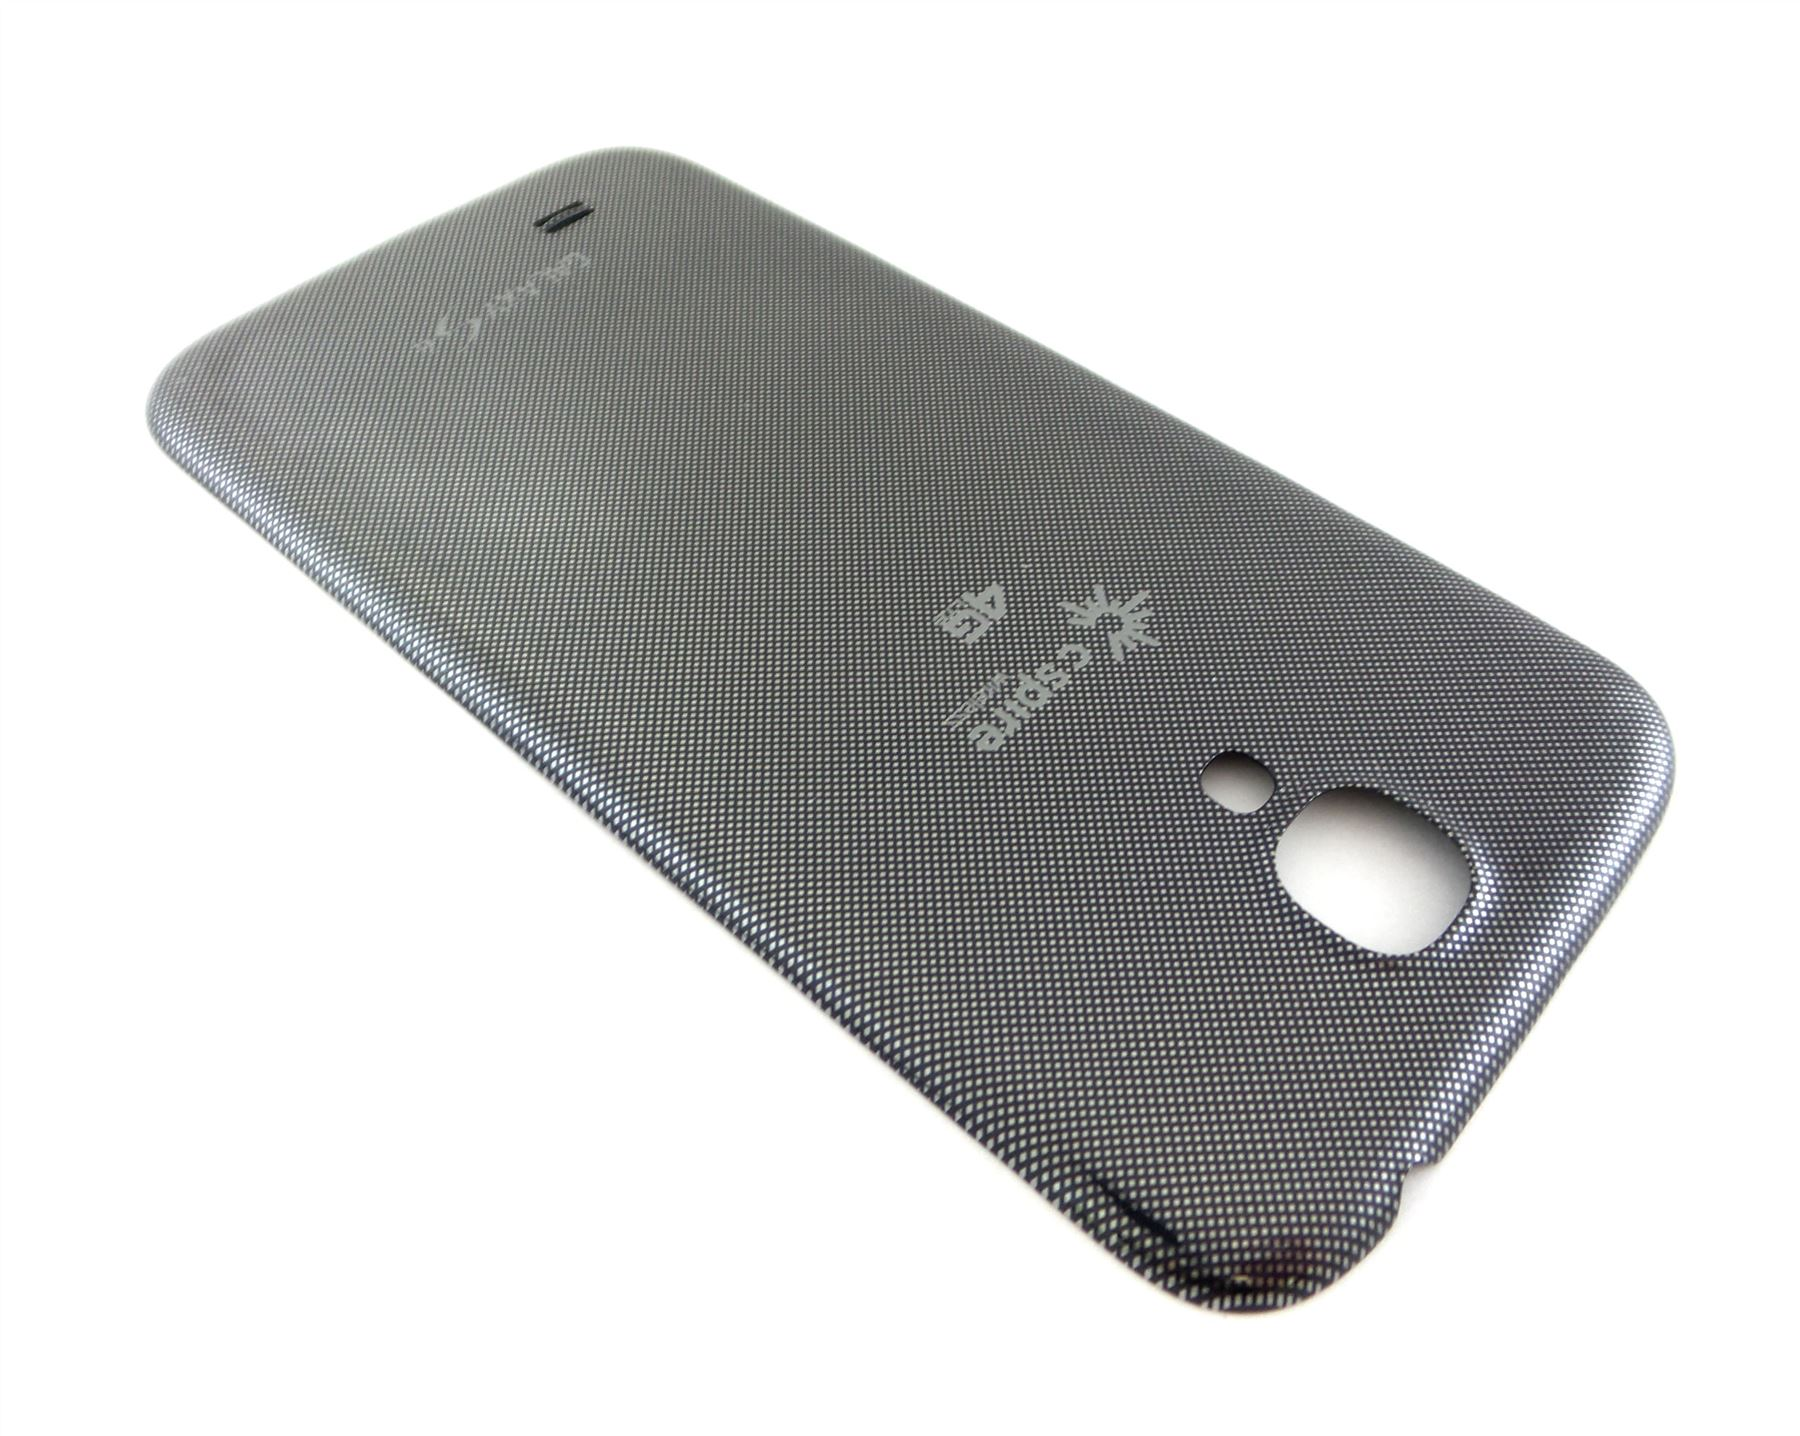 Samsung-Galaxy-S4-Authentic-Battery-Door-Cover-AT-amp-T-Verizon-T-Mobile thumbnail 24